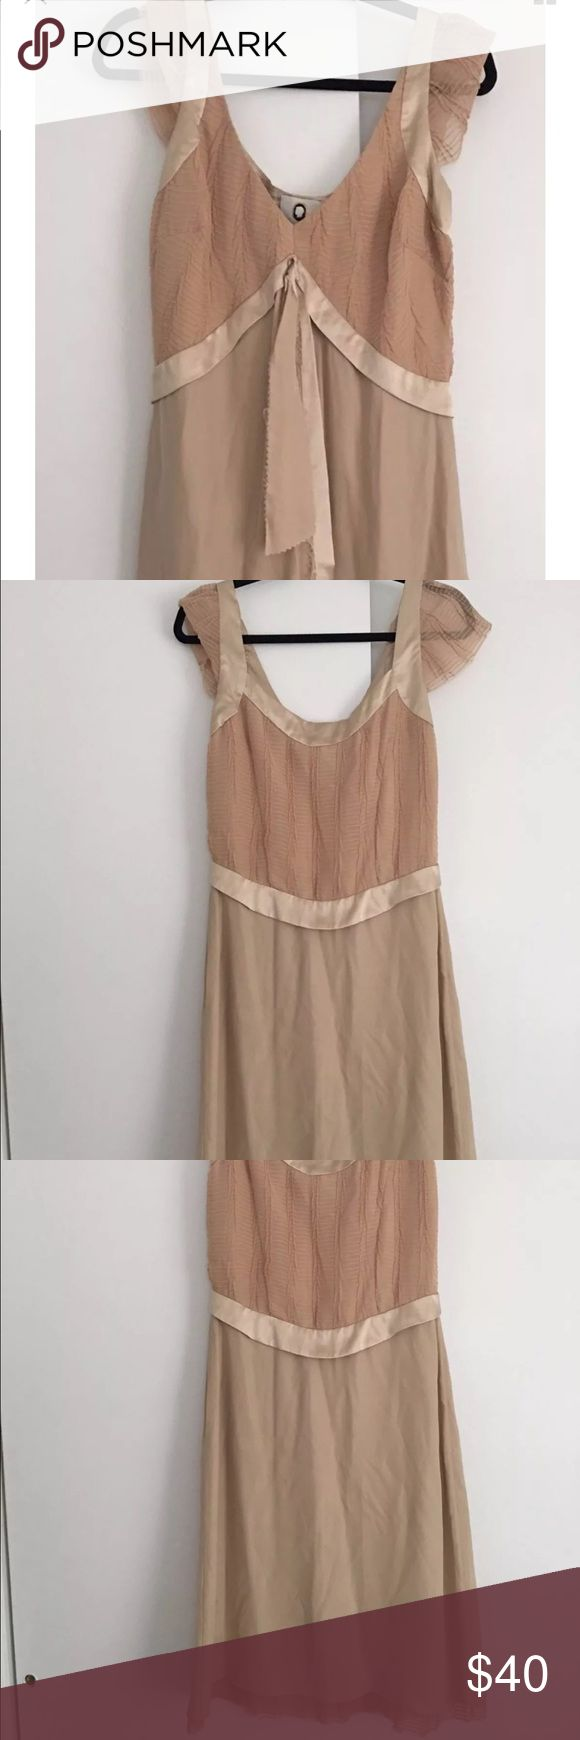 "Maybe silk nude dress sz 8 Flesh colored   cap sleeve   silk   raw hem detailing   raw silk edge detailing   satin trim   side zip   never worn   gorgeous feminine dress  Approximate measurements:   Bust: 38"" Waist: 28"" Hip: 40""  Length: 43"" Classic Mayle styling  vintage feel  lined  hits below knee  classic feminine silhouette  Maison Mayle Jane Mayle mayle Dresses"